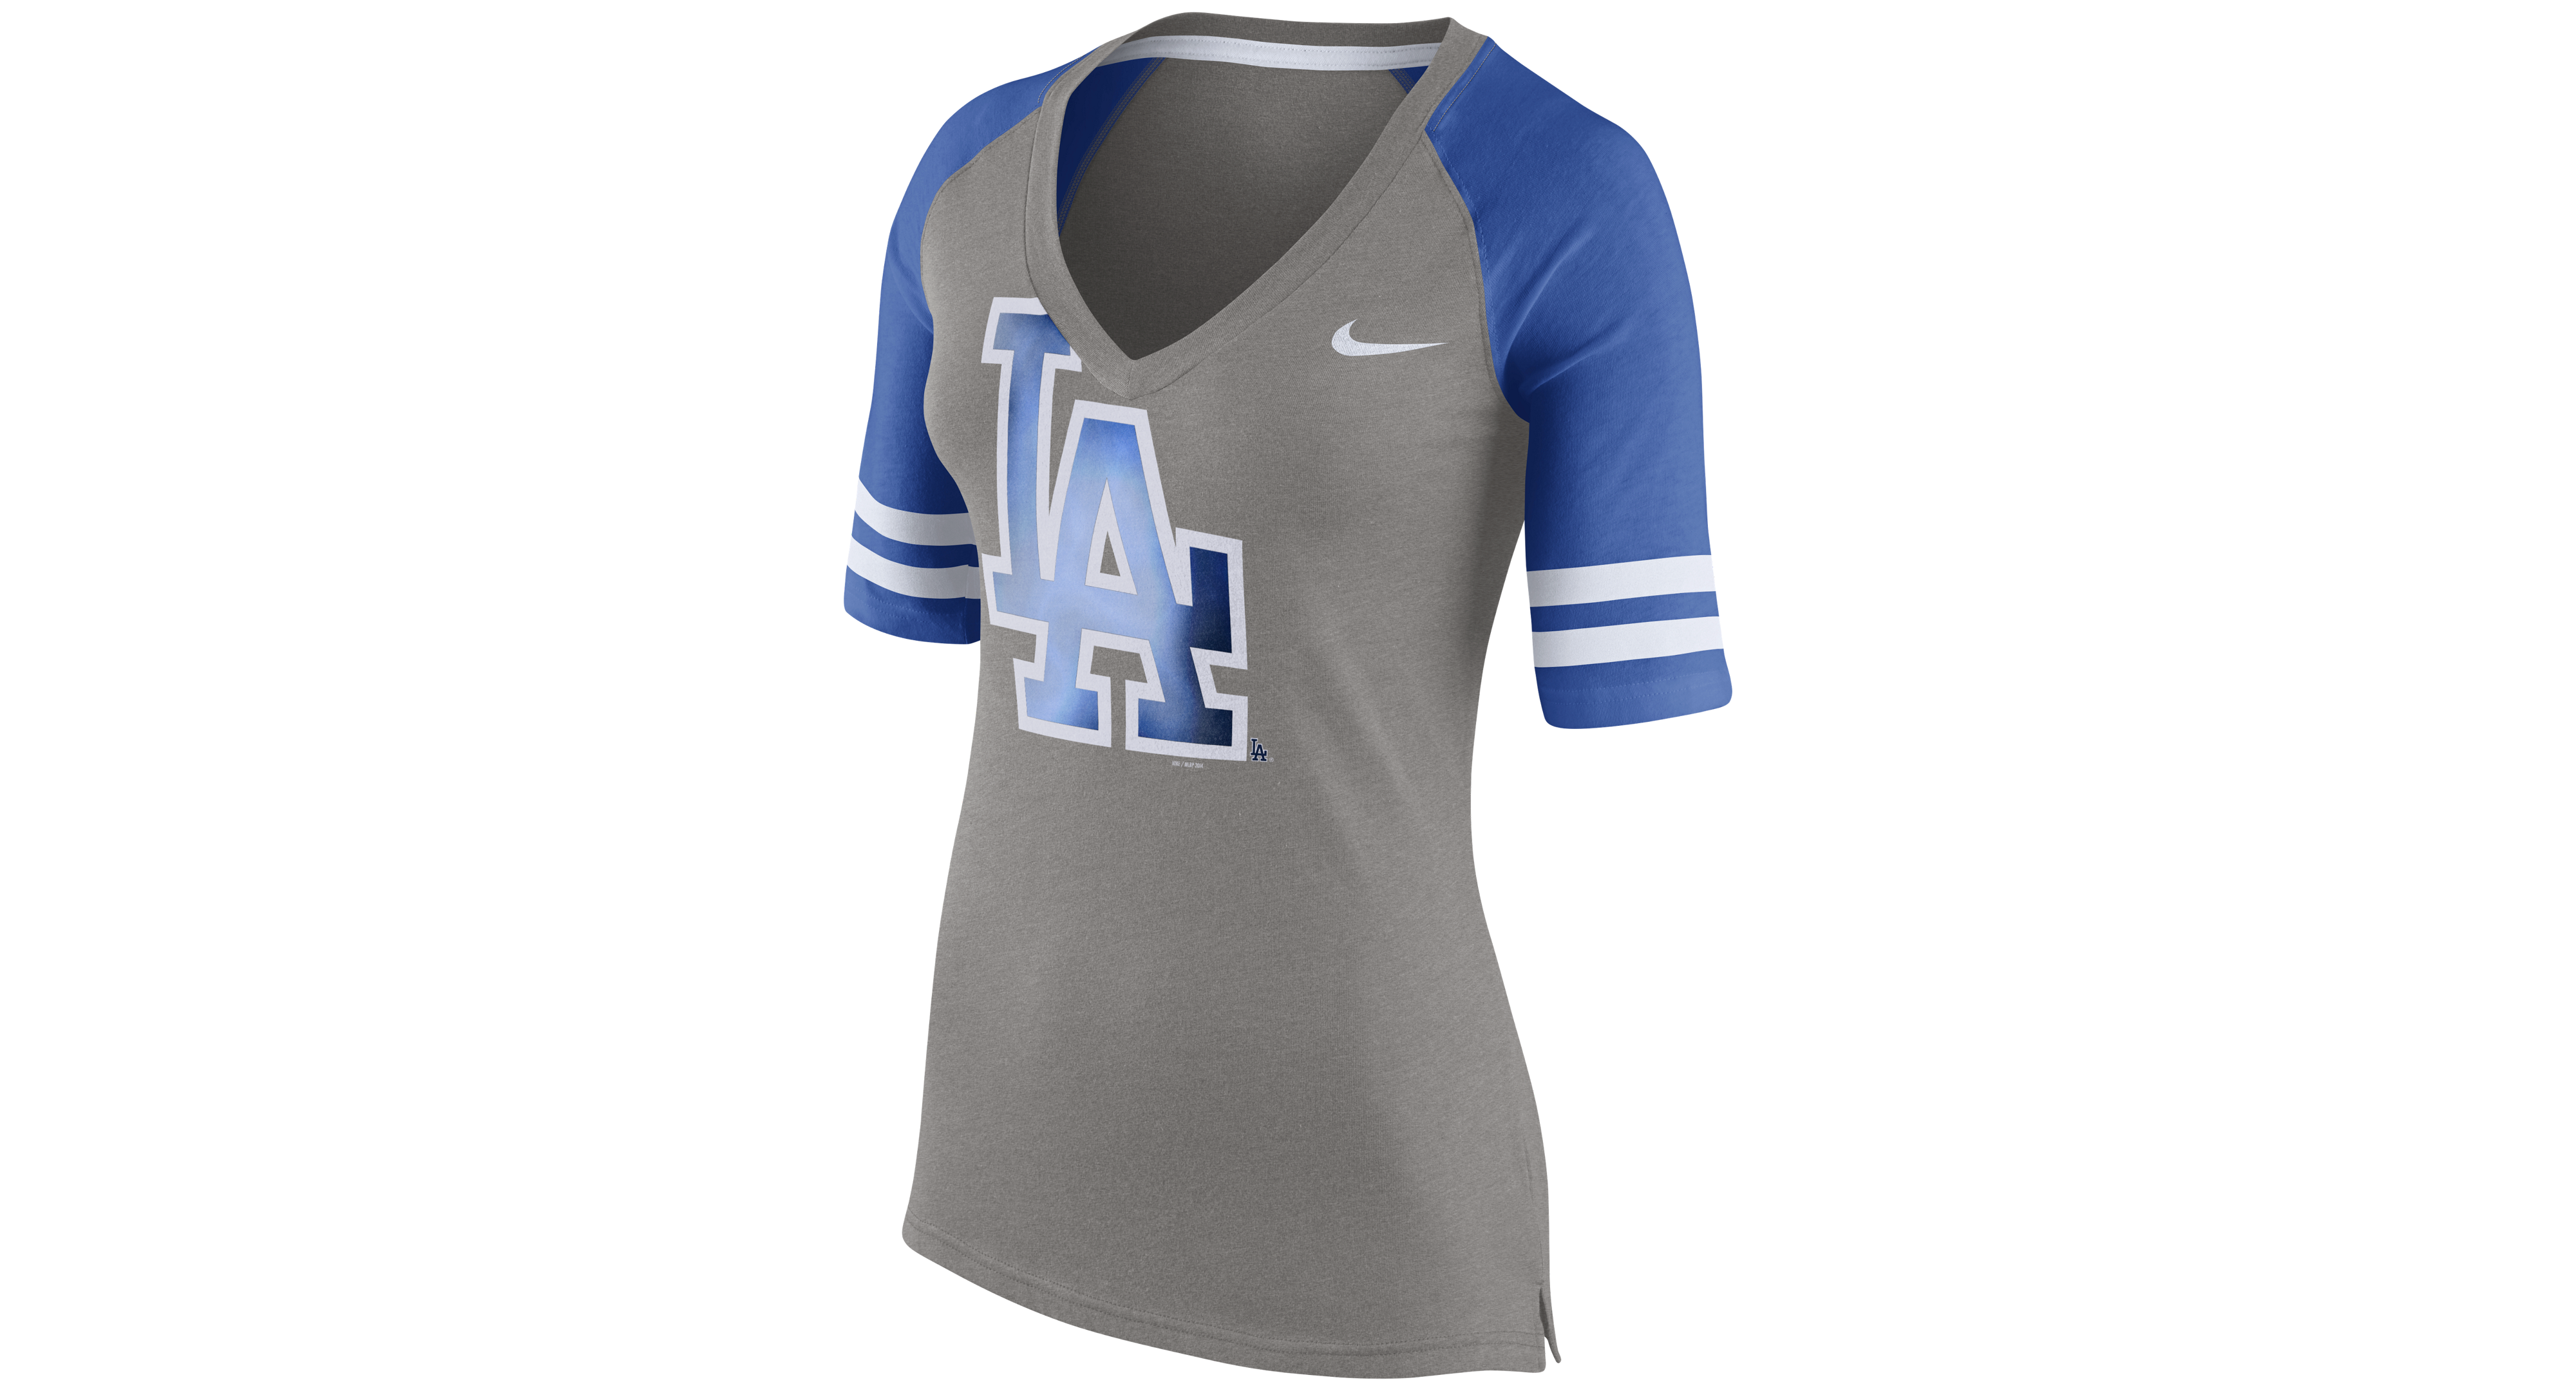 Dodgers Shirts Womens | RLDM